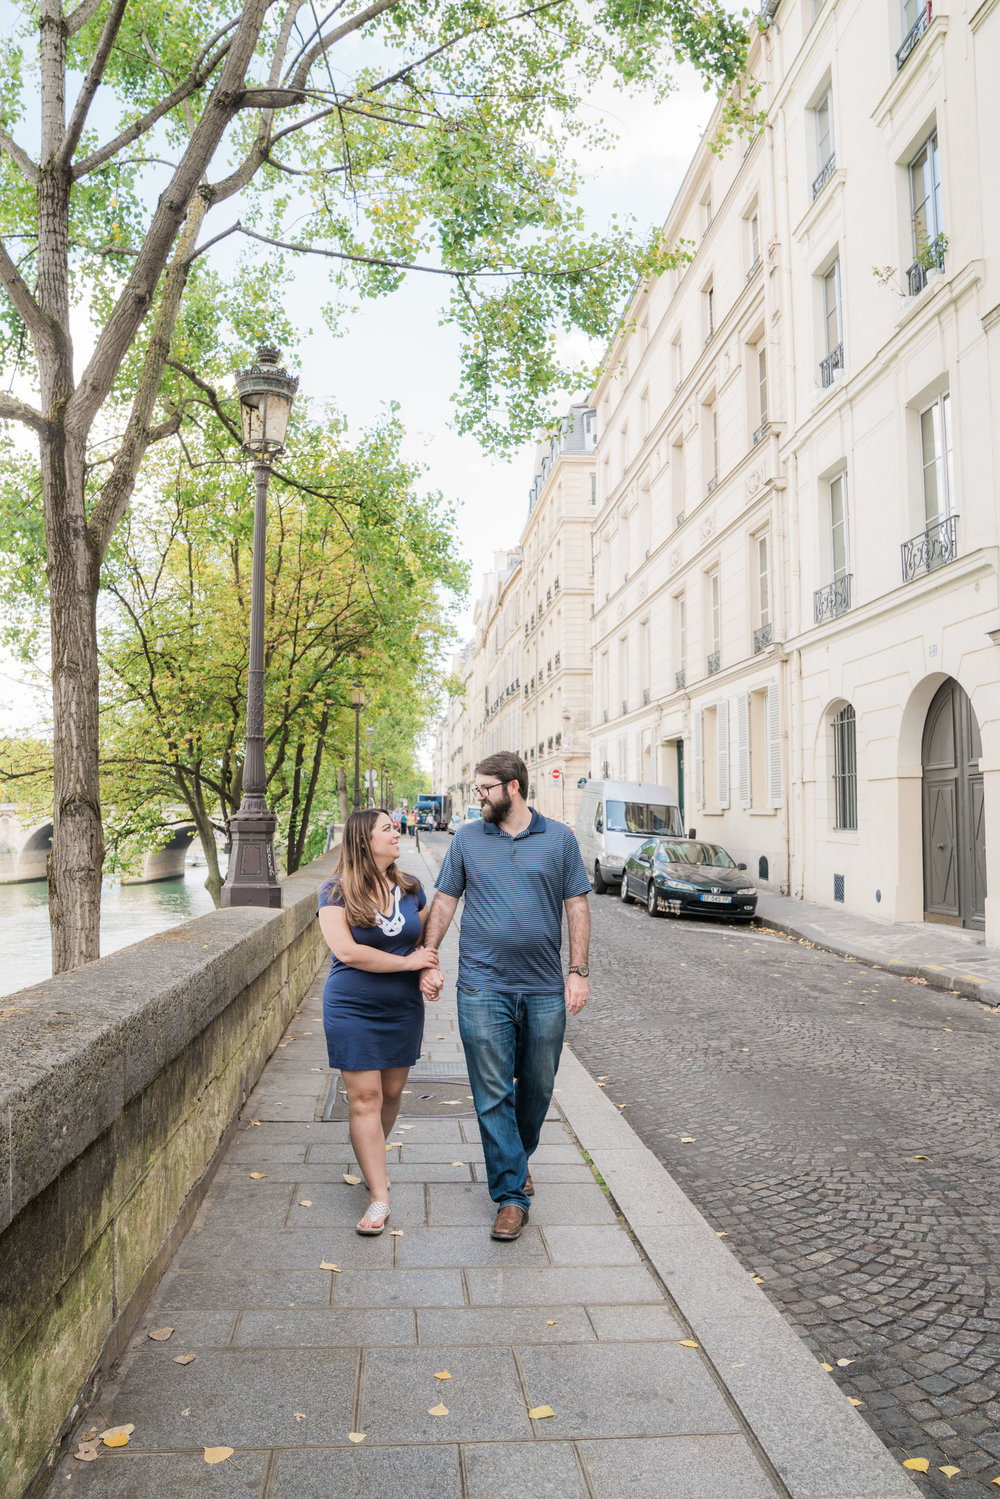 honeymoon photo session in paris france around notre dame cathedral and latin quarter